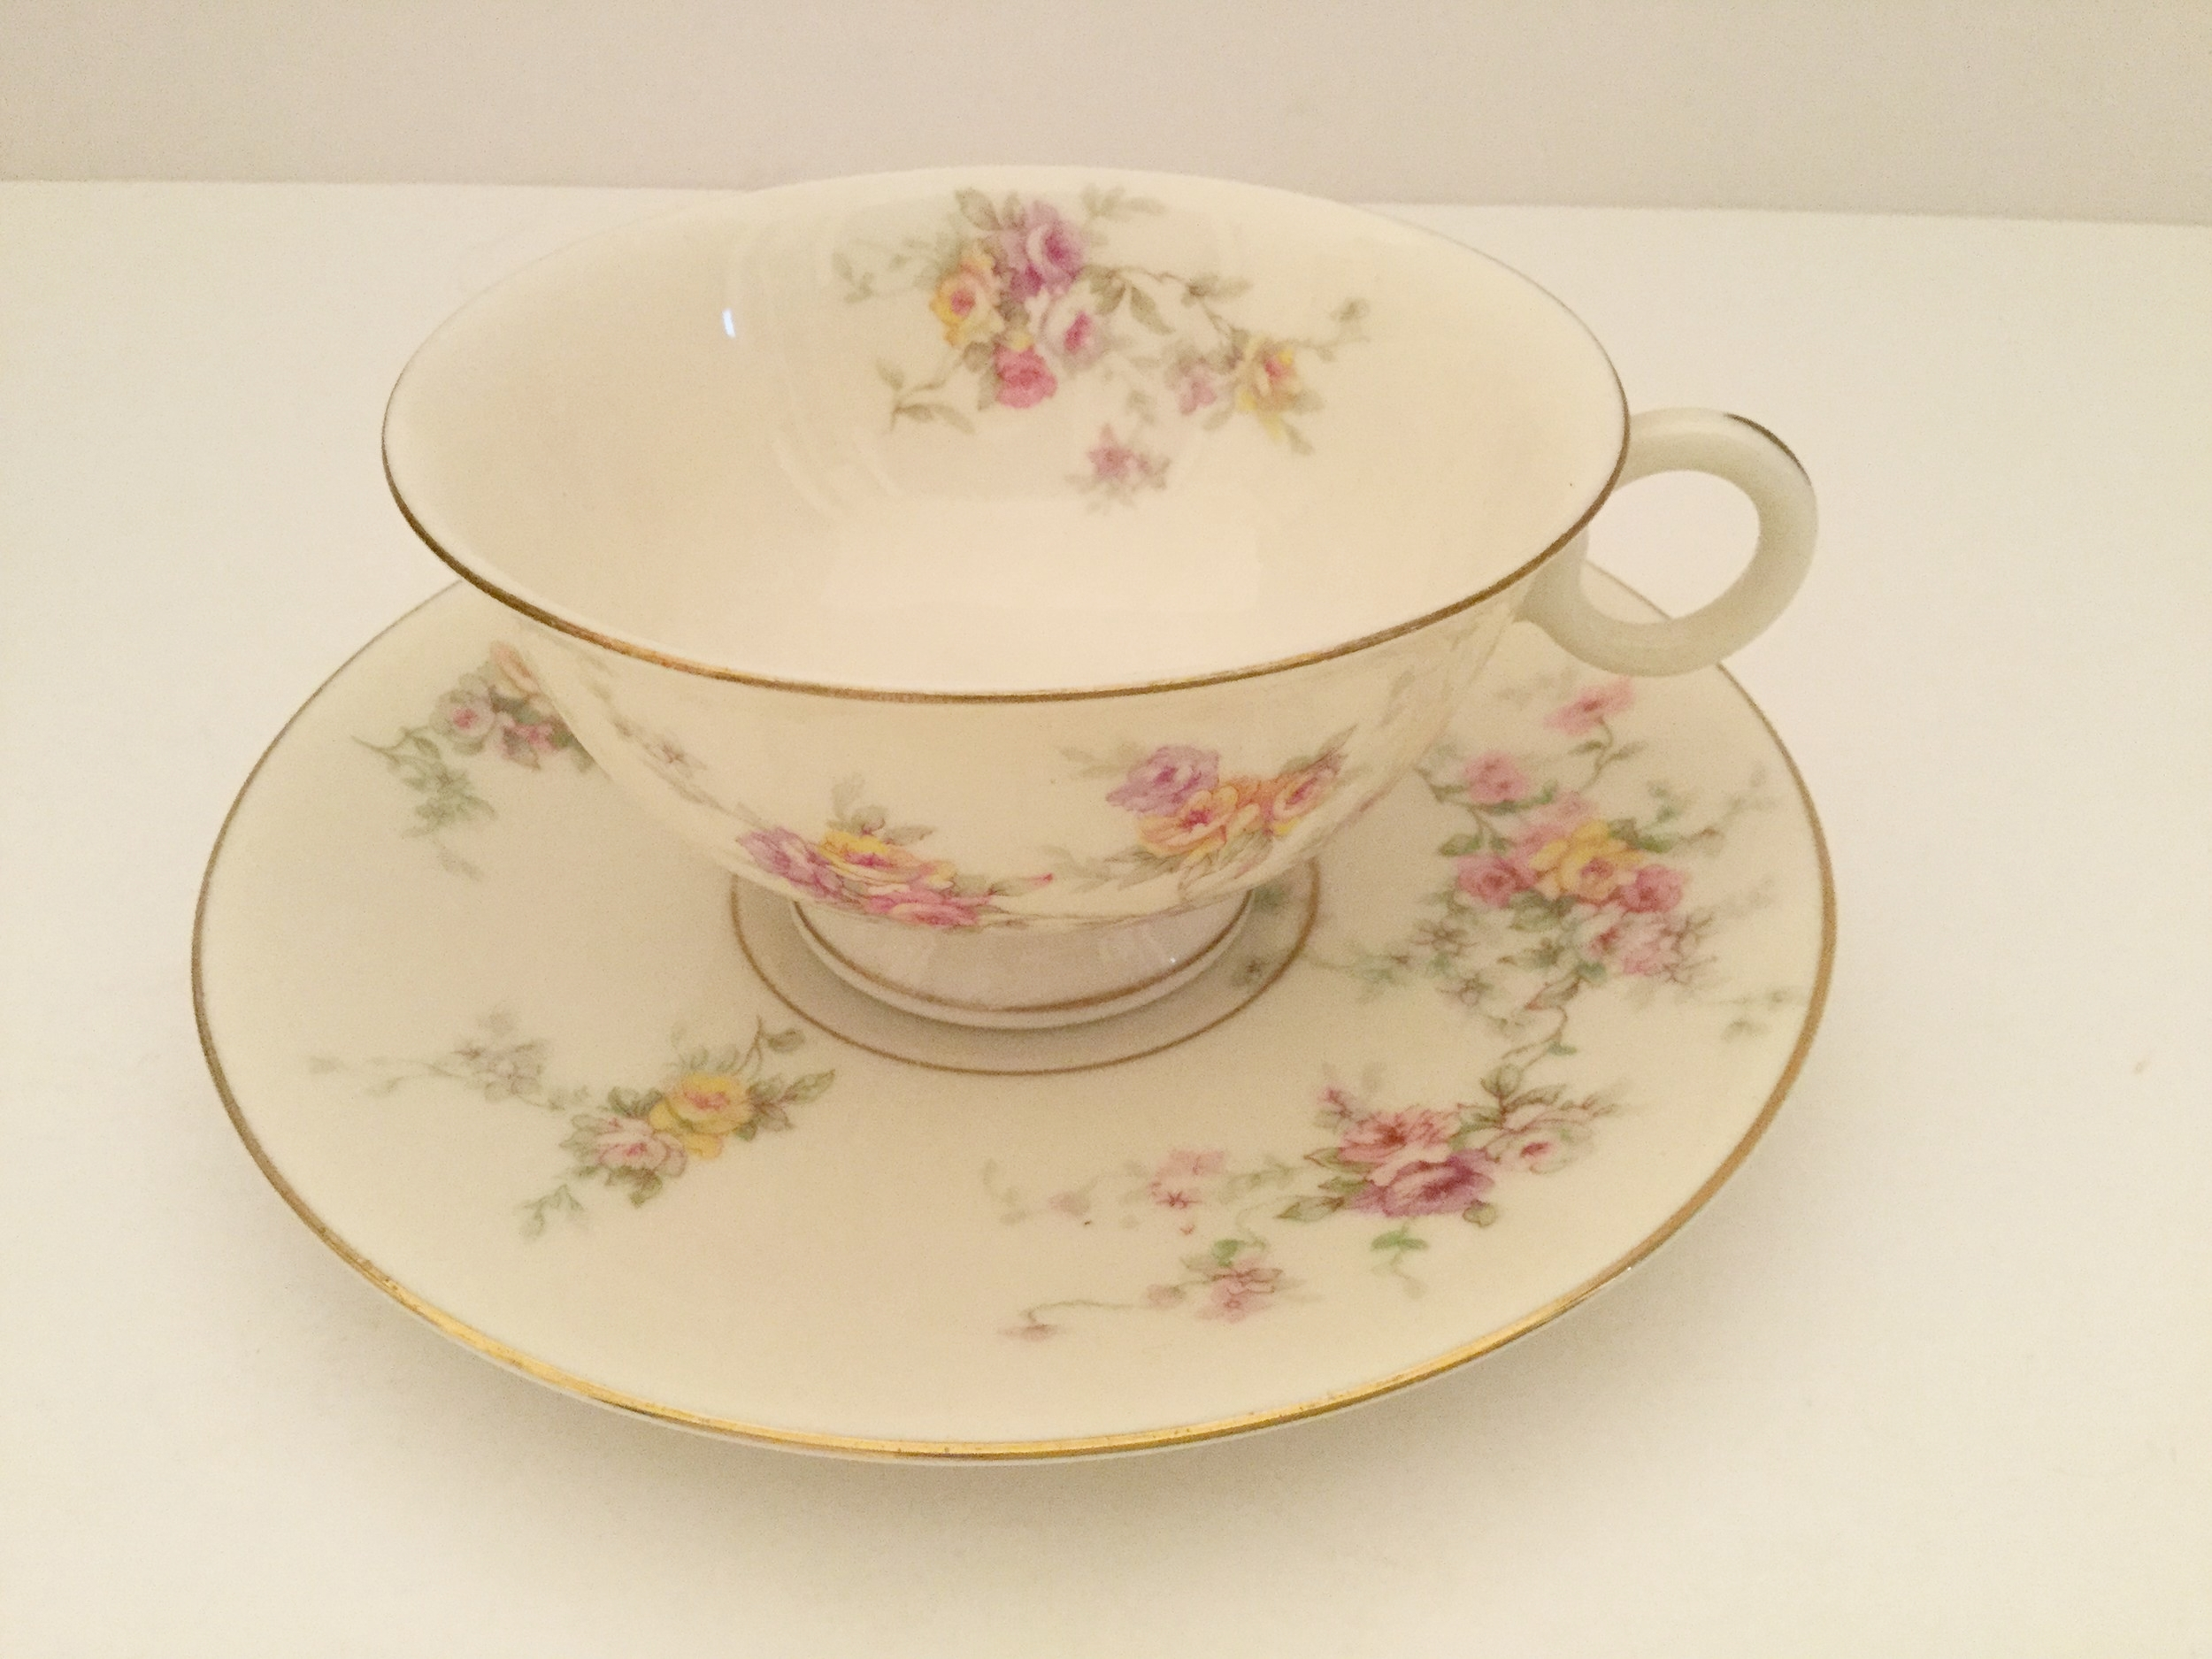 A collected cup and saucer from my maternal grandmother's pattern ... Haviland New York, Gloria, probably from the 1950s